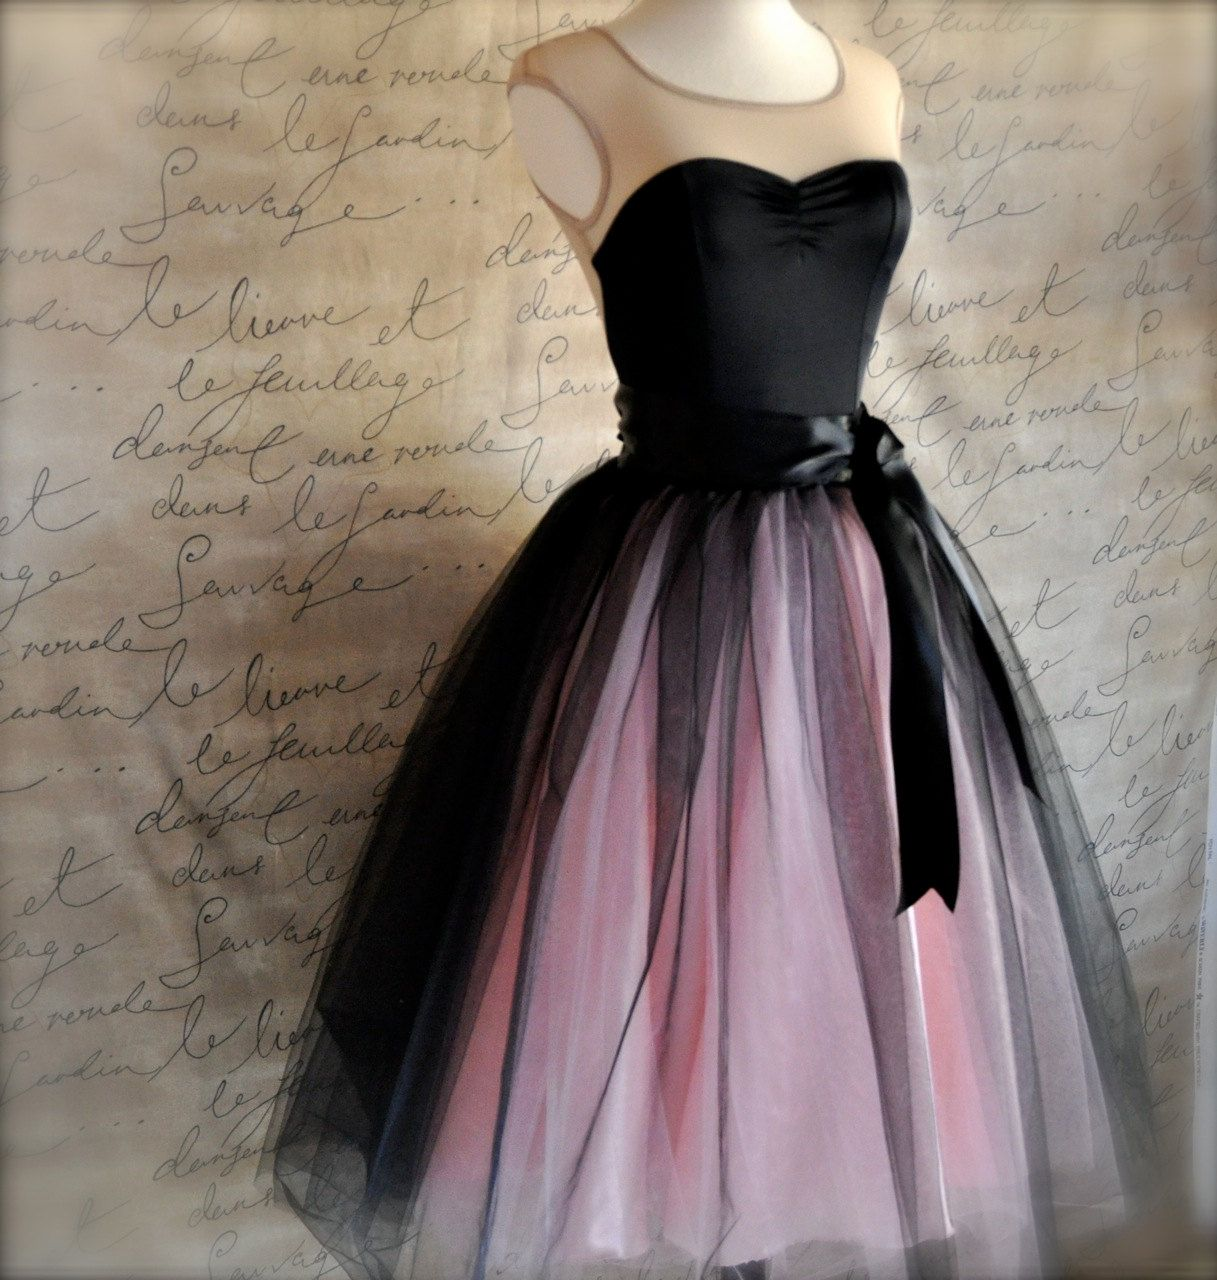 3c9e76baba929 Party dress Black and pink tutu skirt for women. Ballet glamour. Retro look tulle  skirt..  145.00